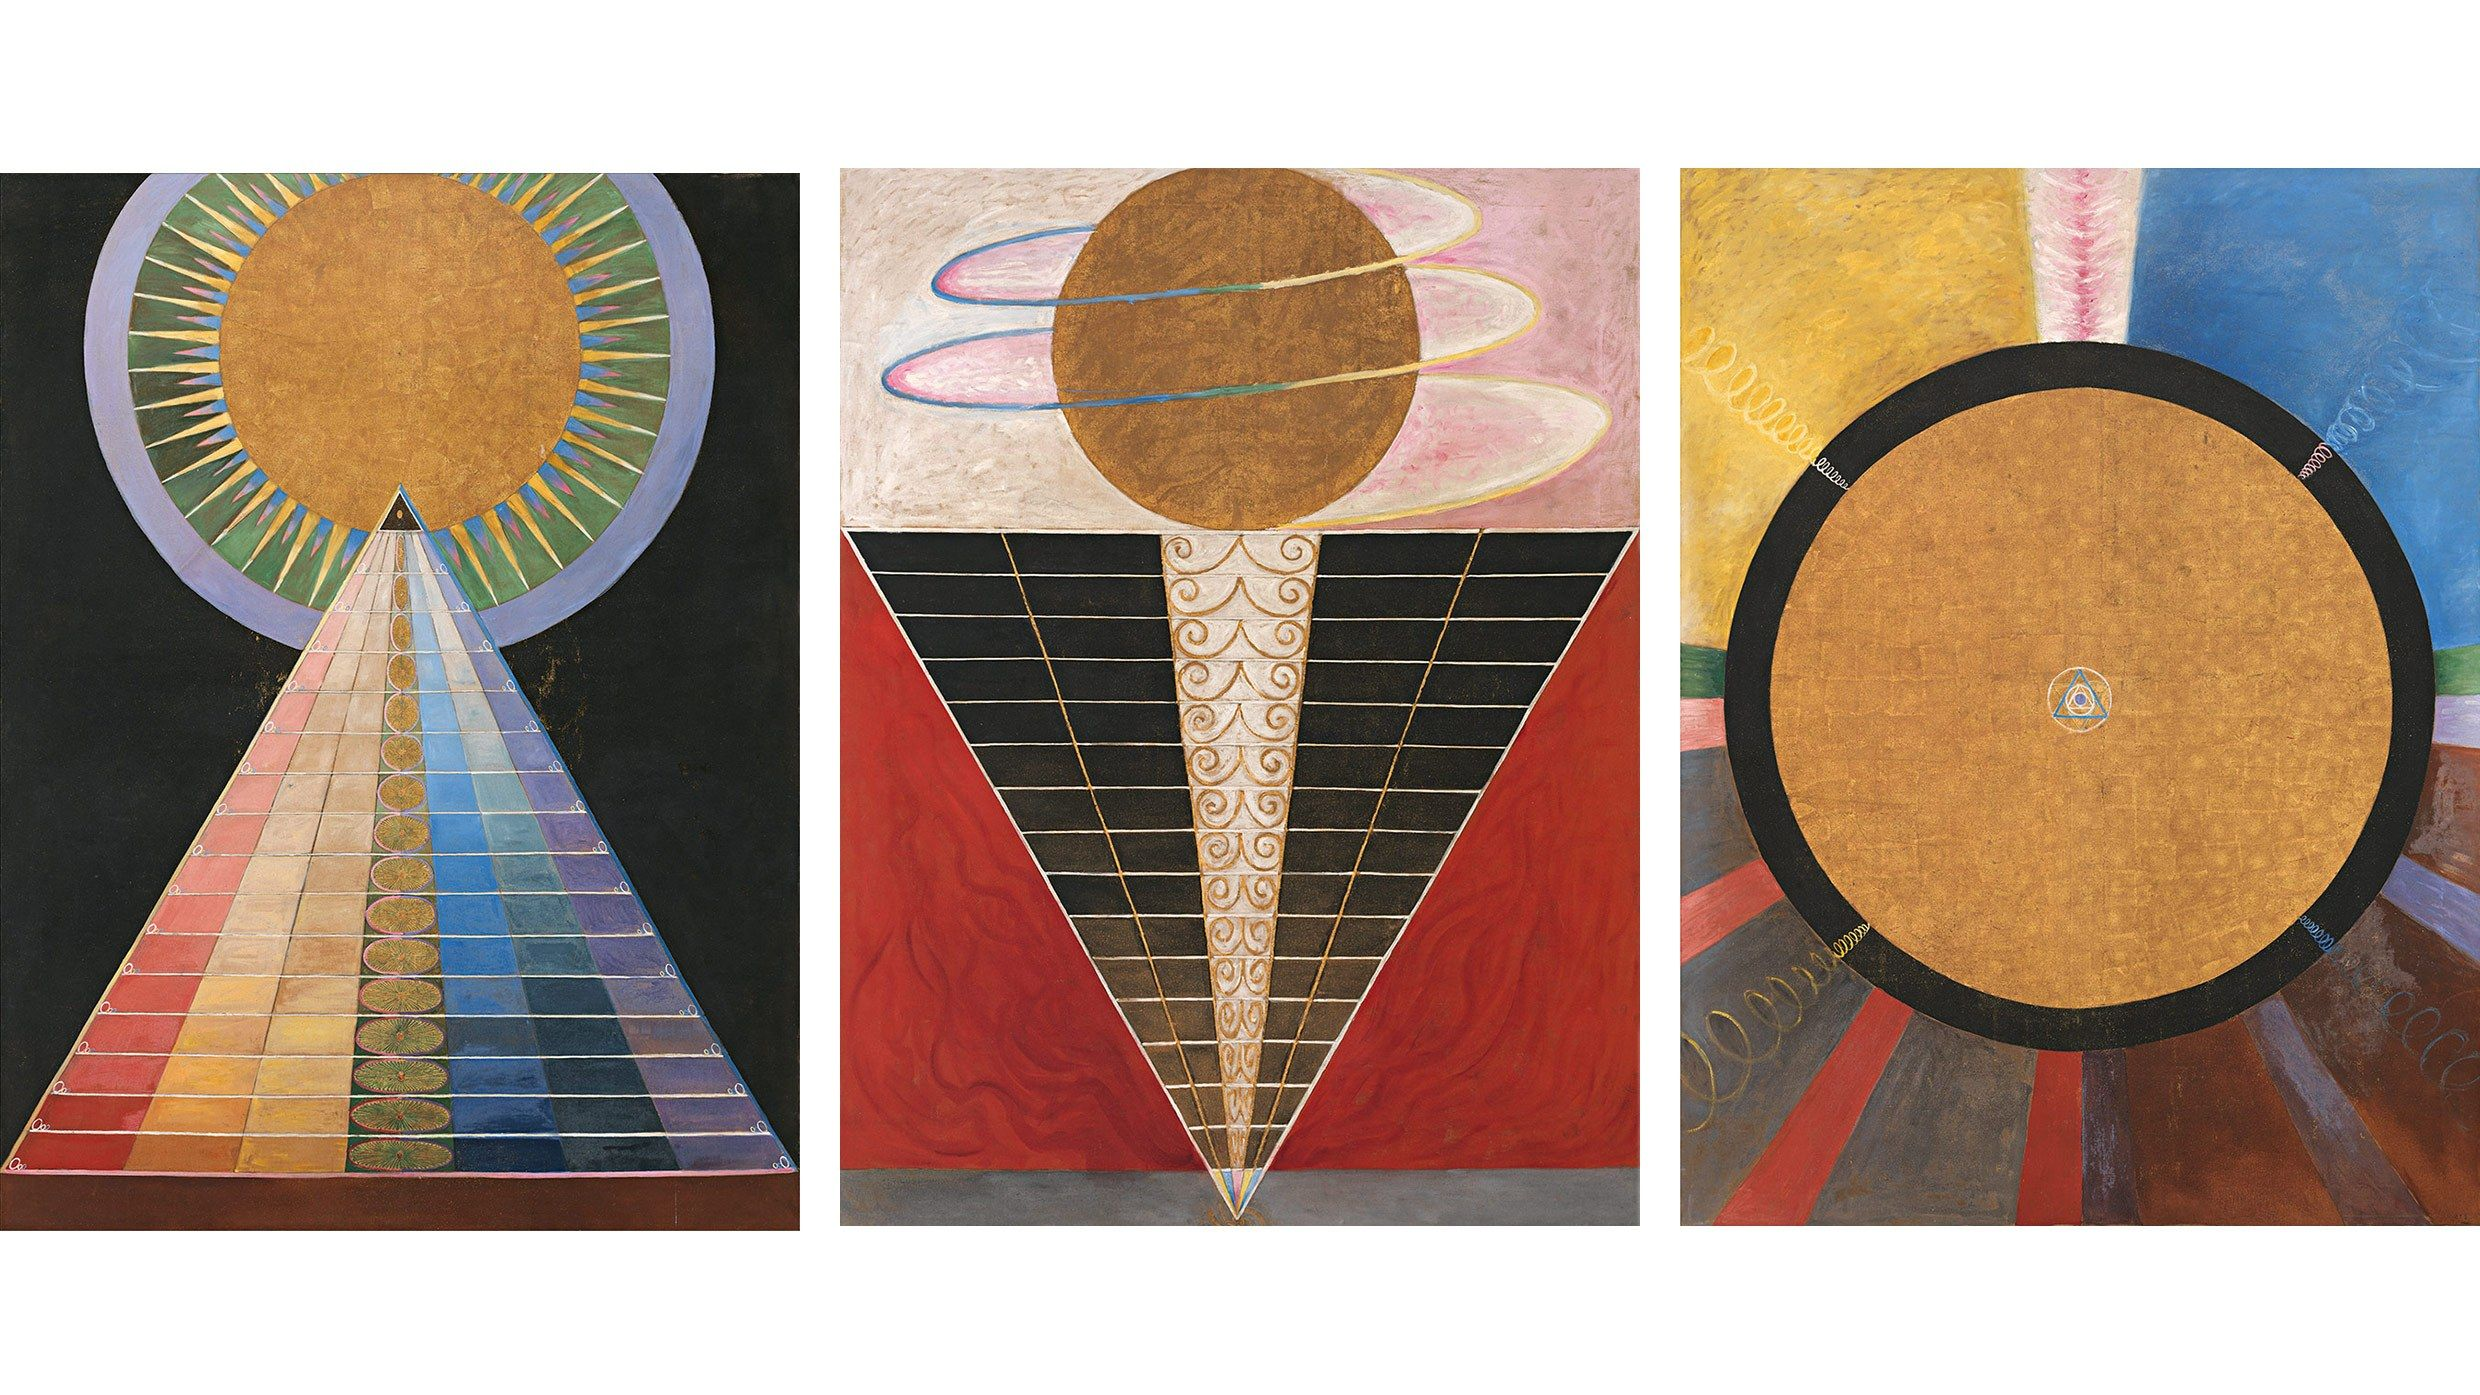 Paintings for the Temple | Hilma af klint, Art deco posters, Automatic  drawing